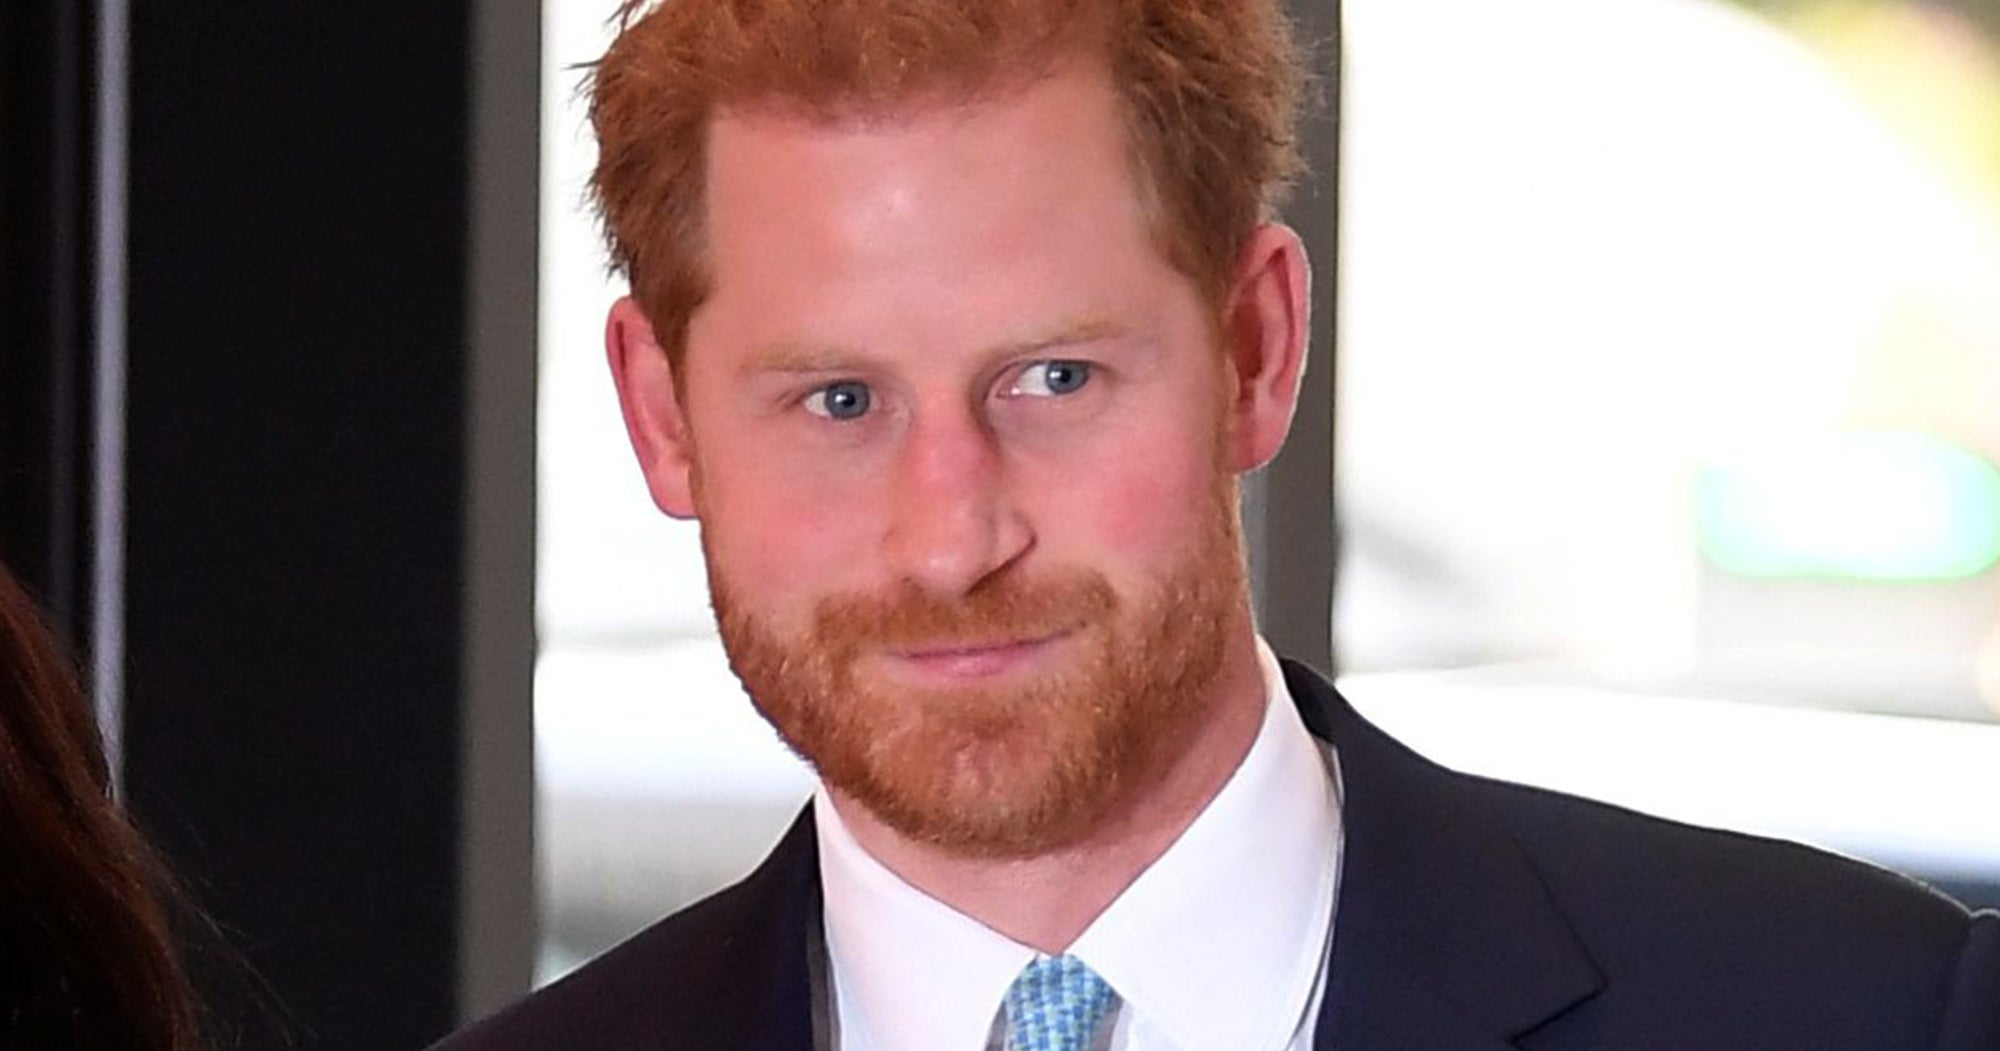 Prince Harry Can Barely Make It Through This Speech About His Wife & Son